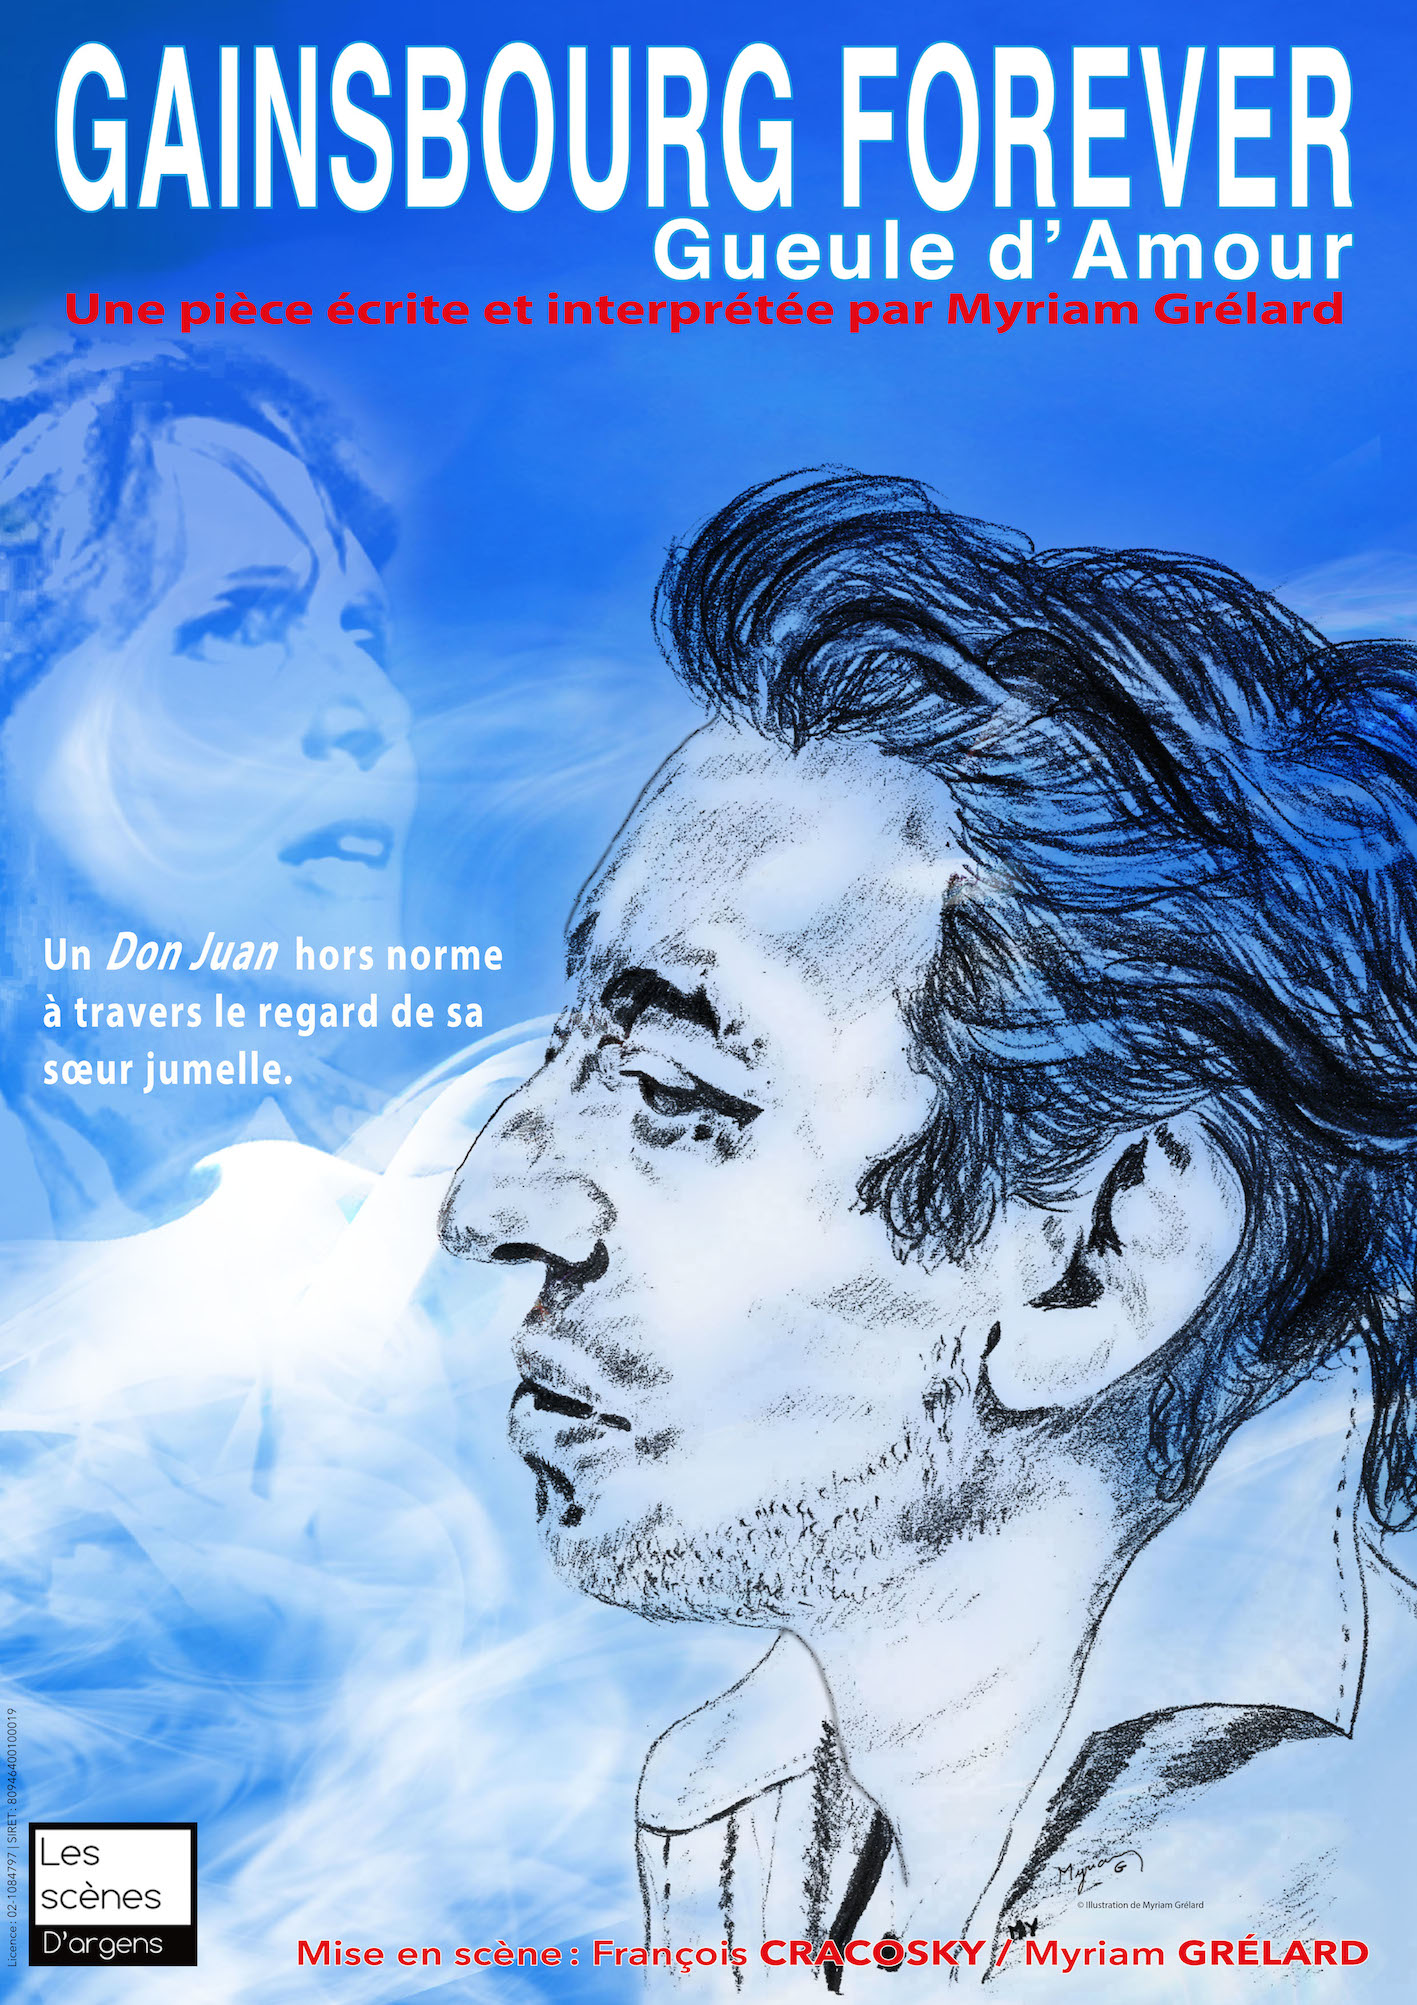 gueule d amour gainsbourg forever